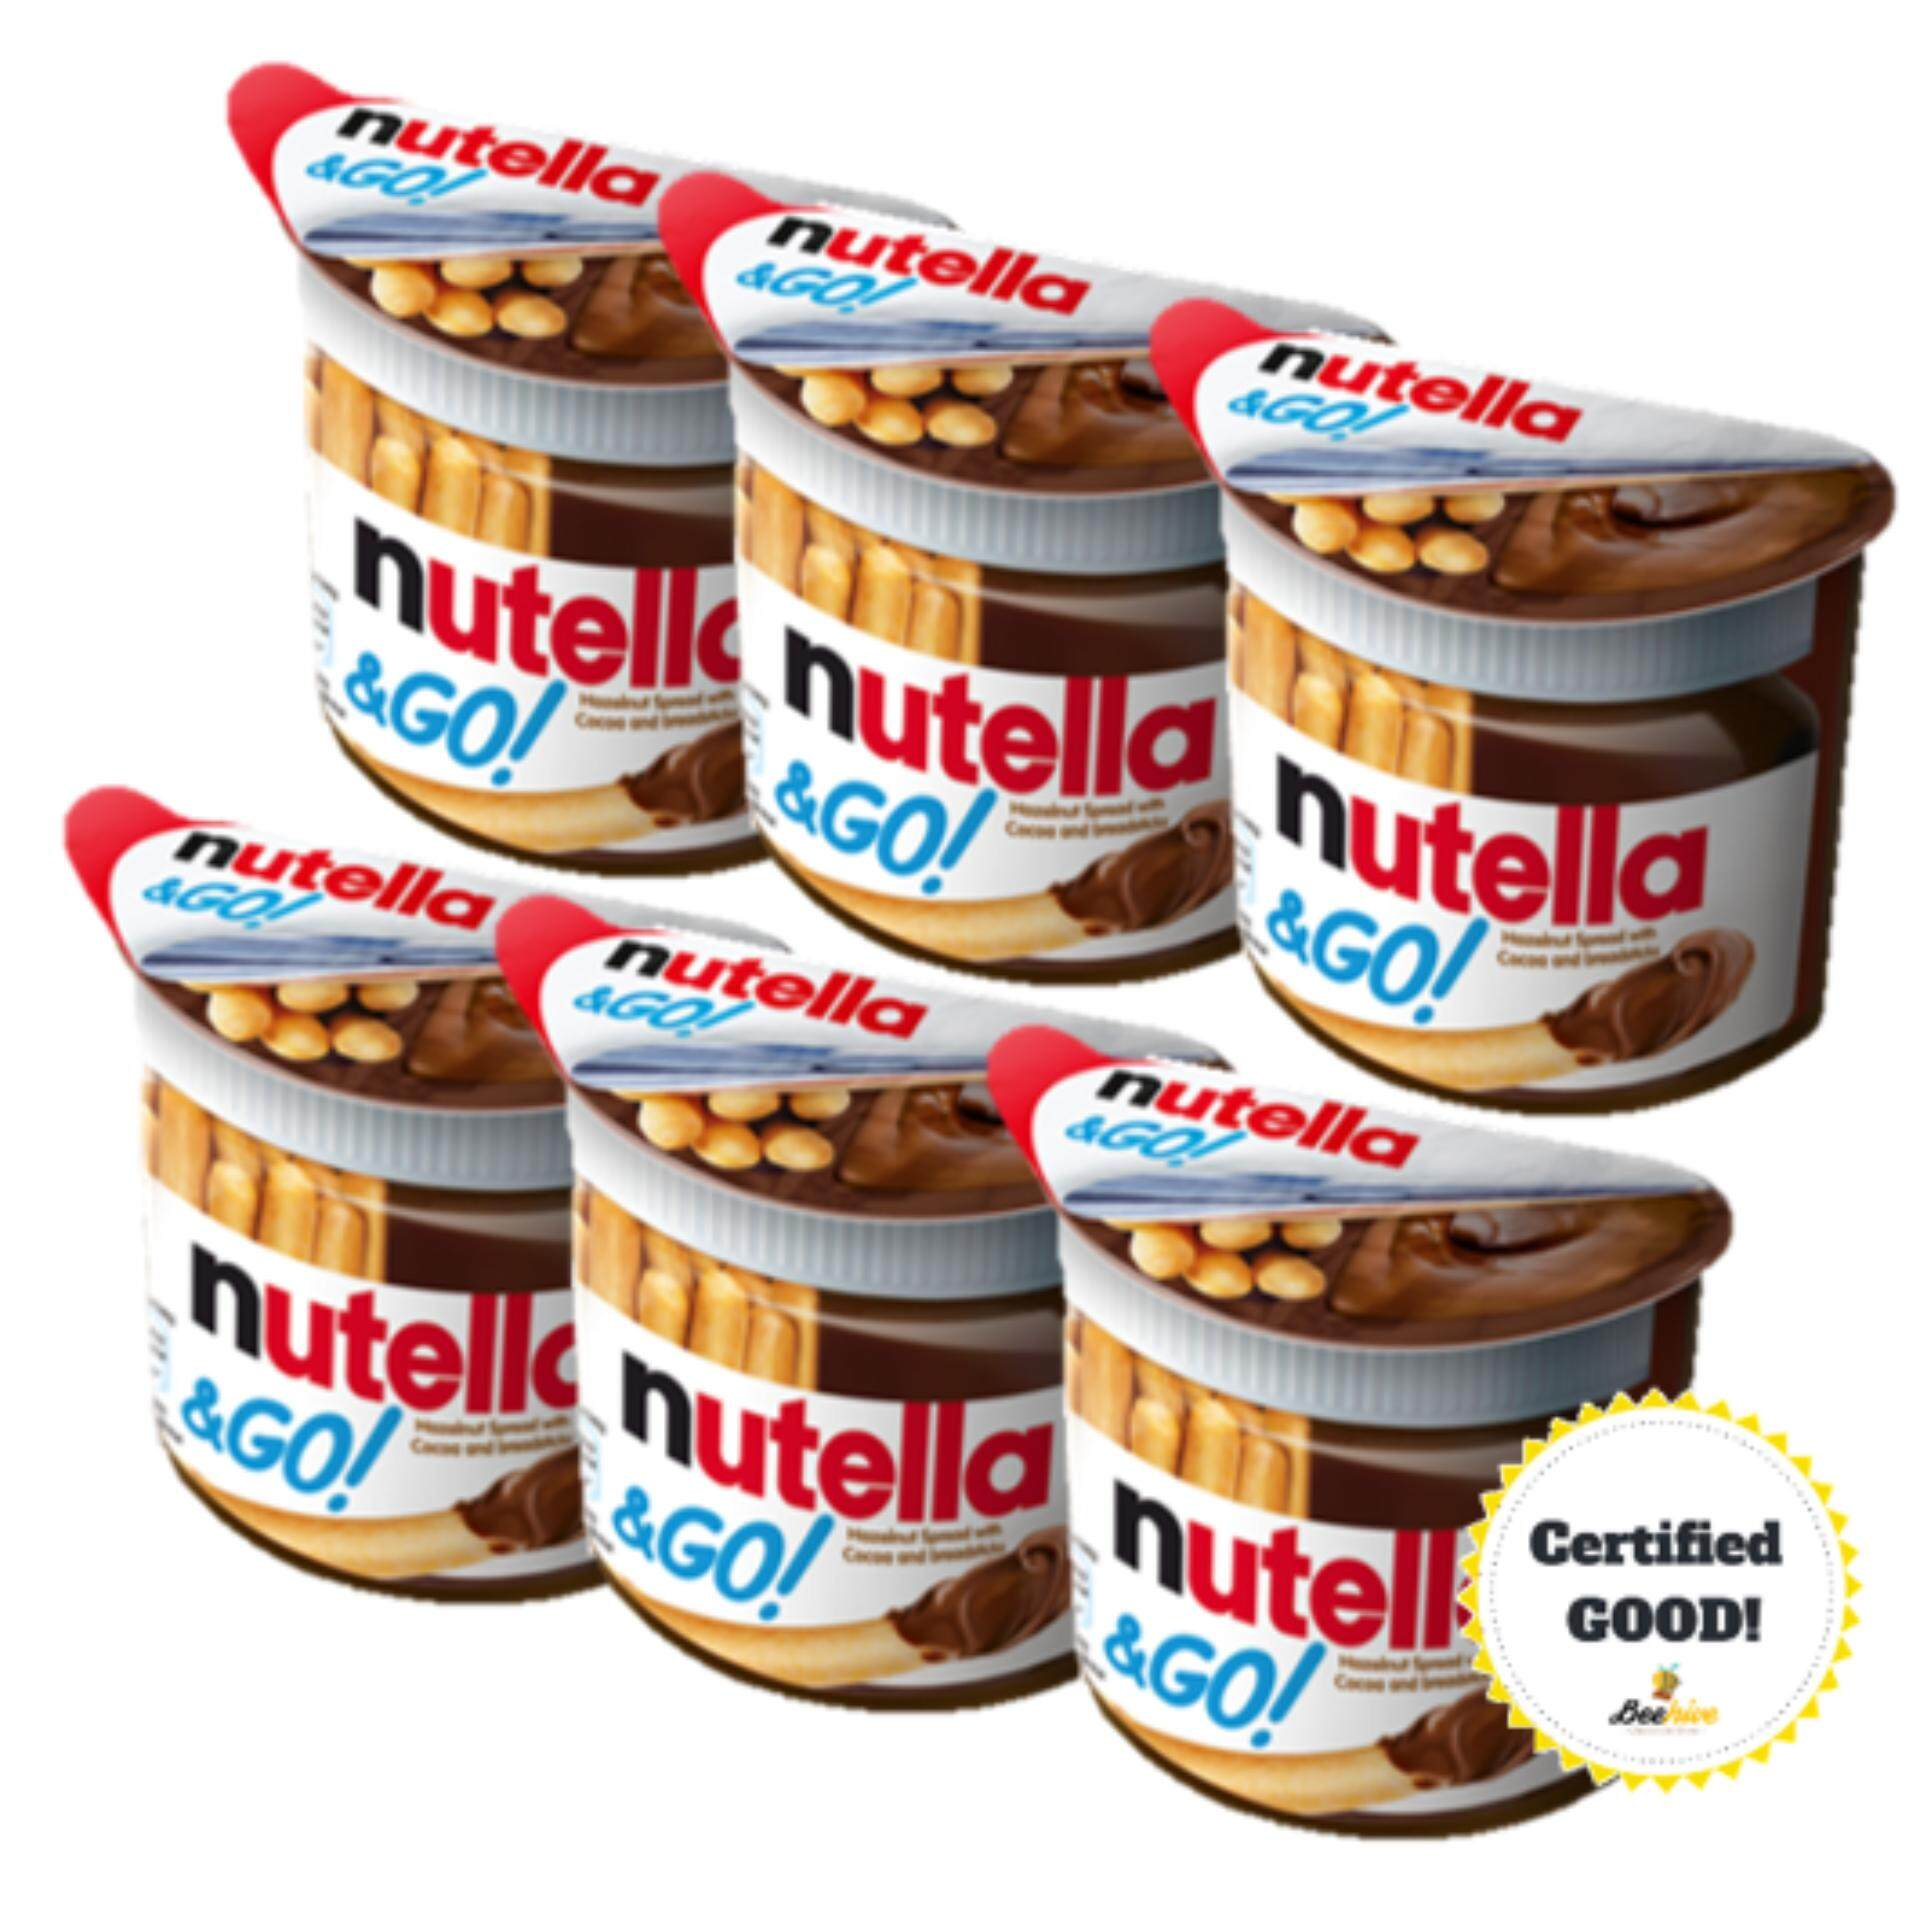 Nutella & GO Snack 6x52g [Pack of 6]